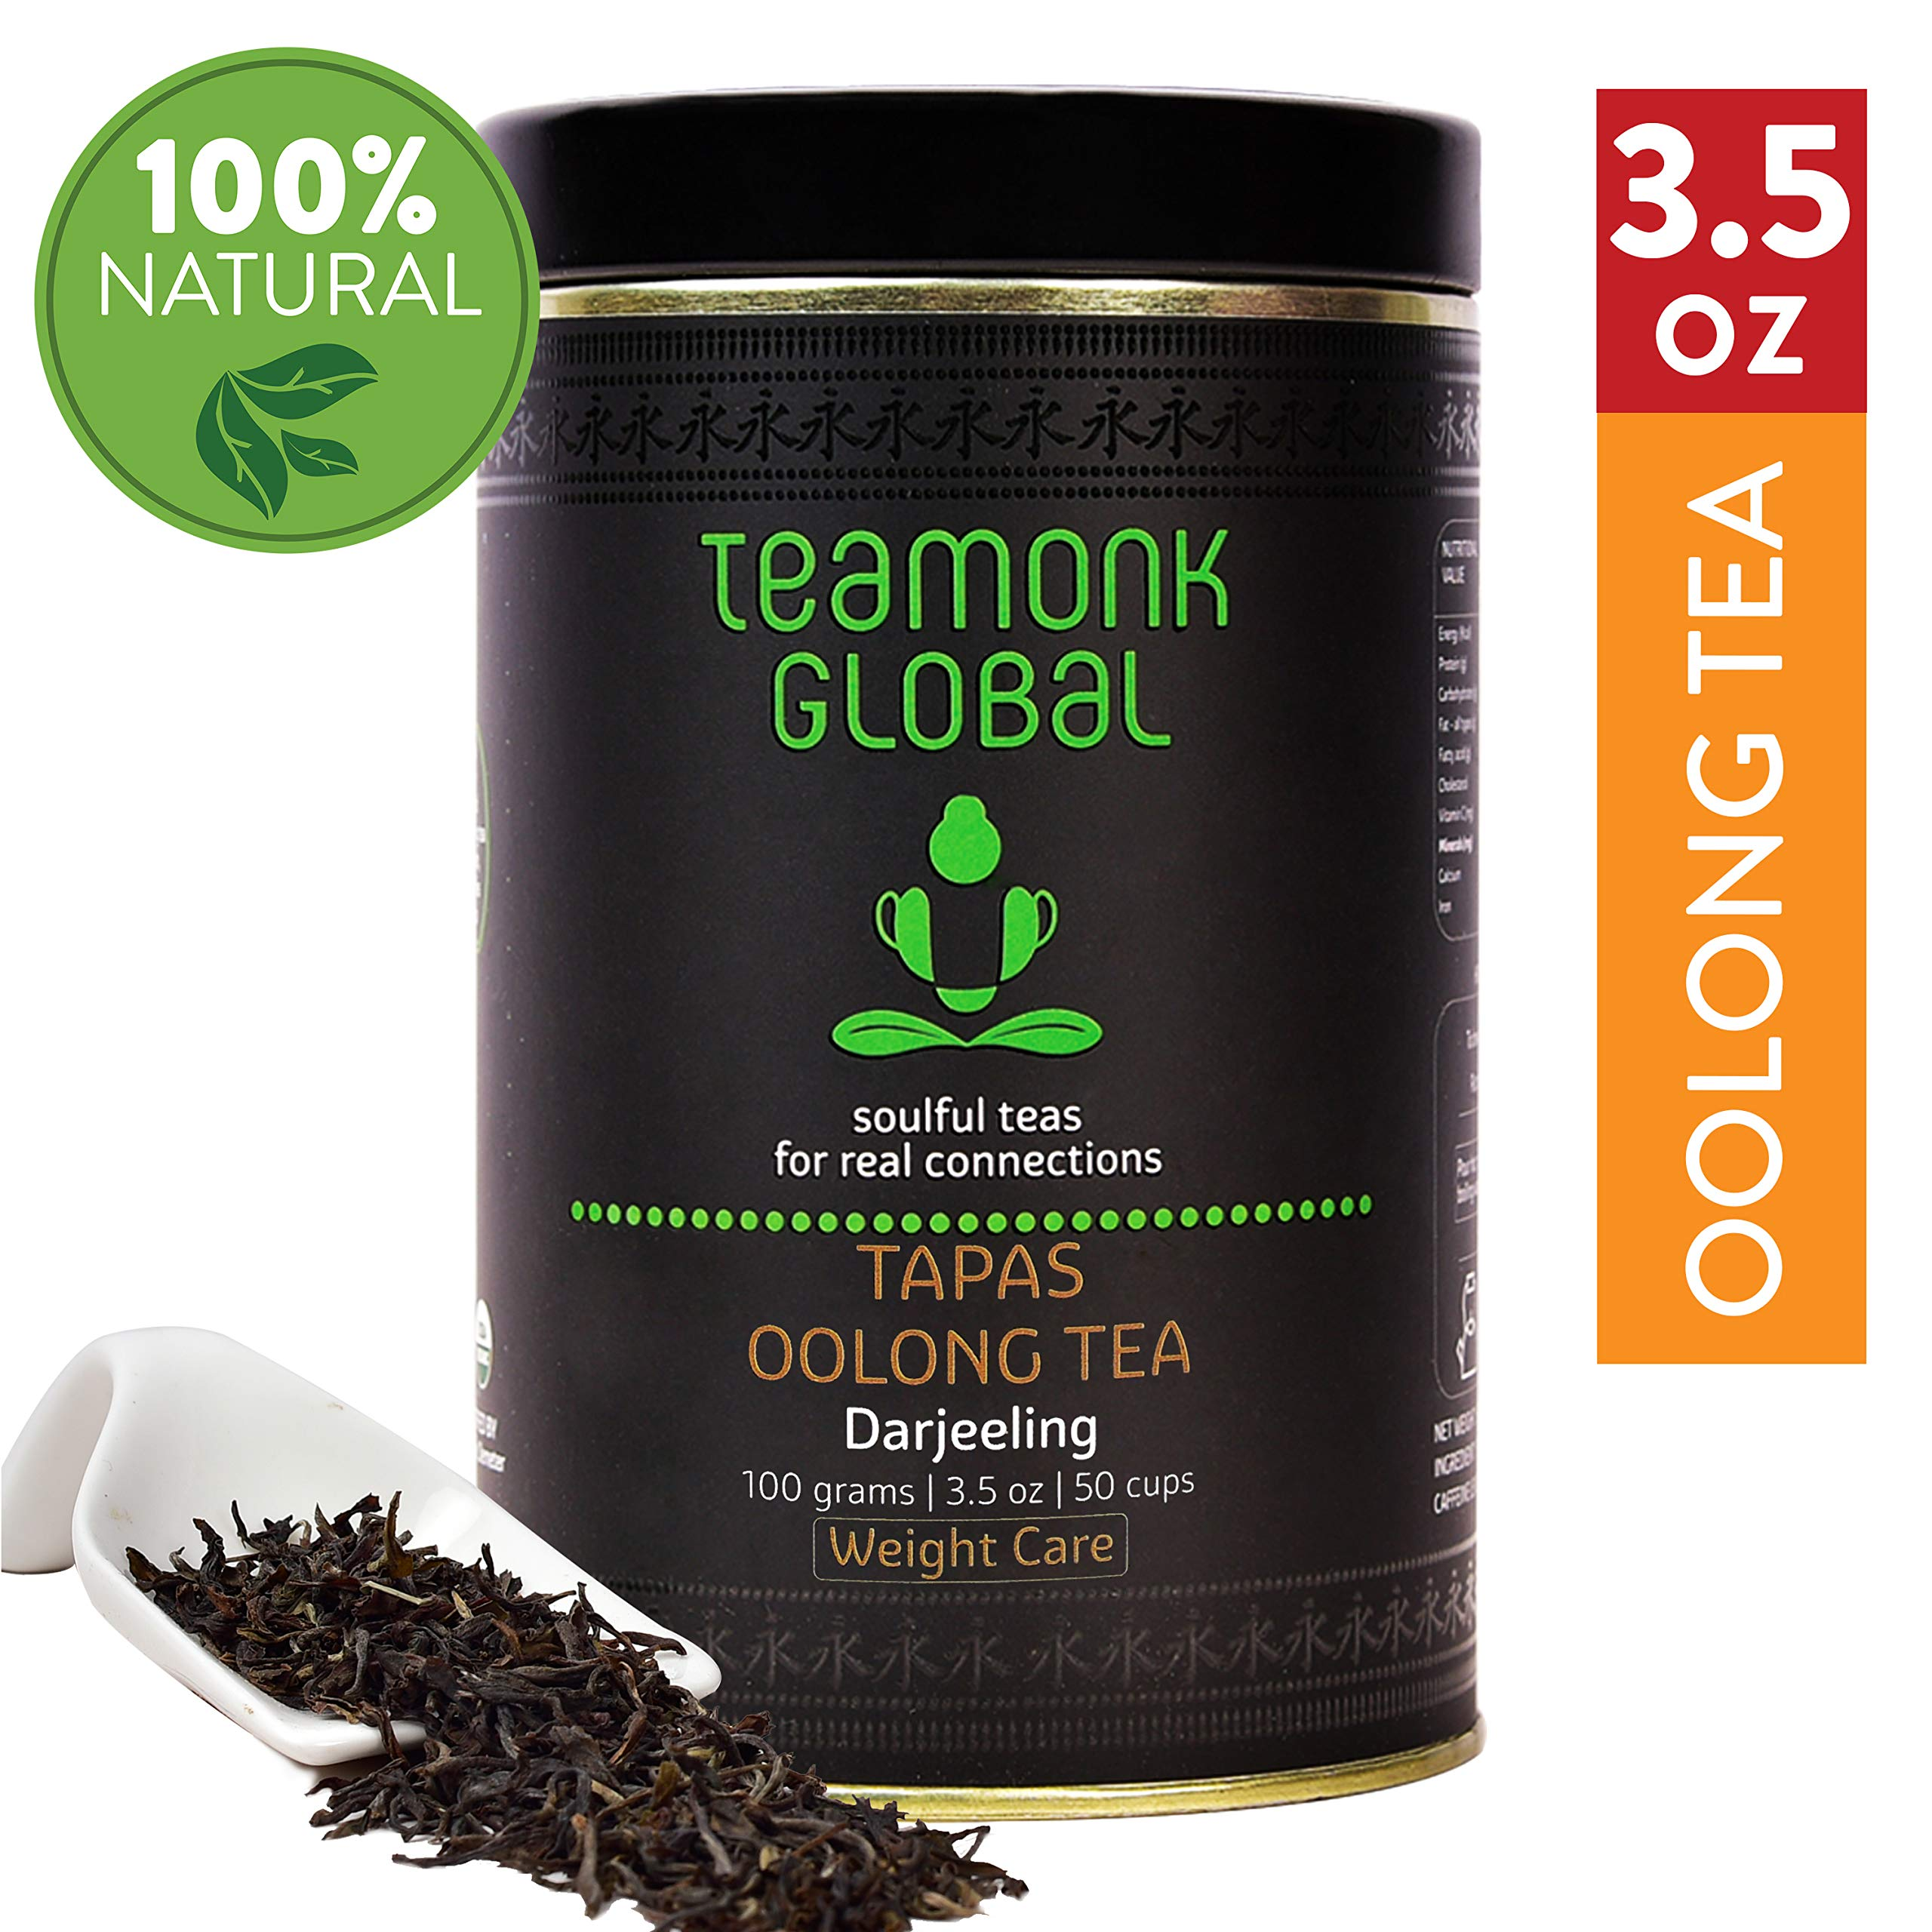 Darjeeling Oolong Tea, 3.5oz (50 Cups)   Supports Weight Loss   100% Natural Whole Loose Leaf Tea from the Himalayas   No additives